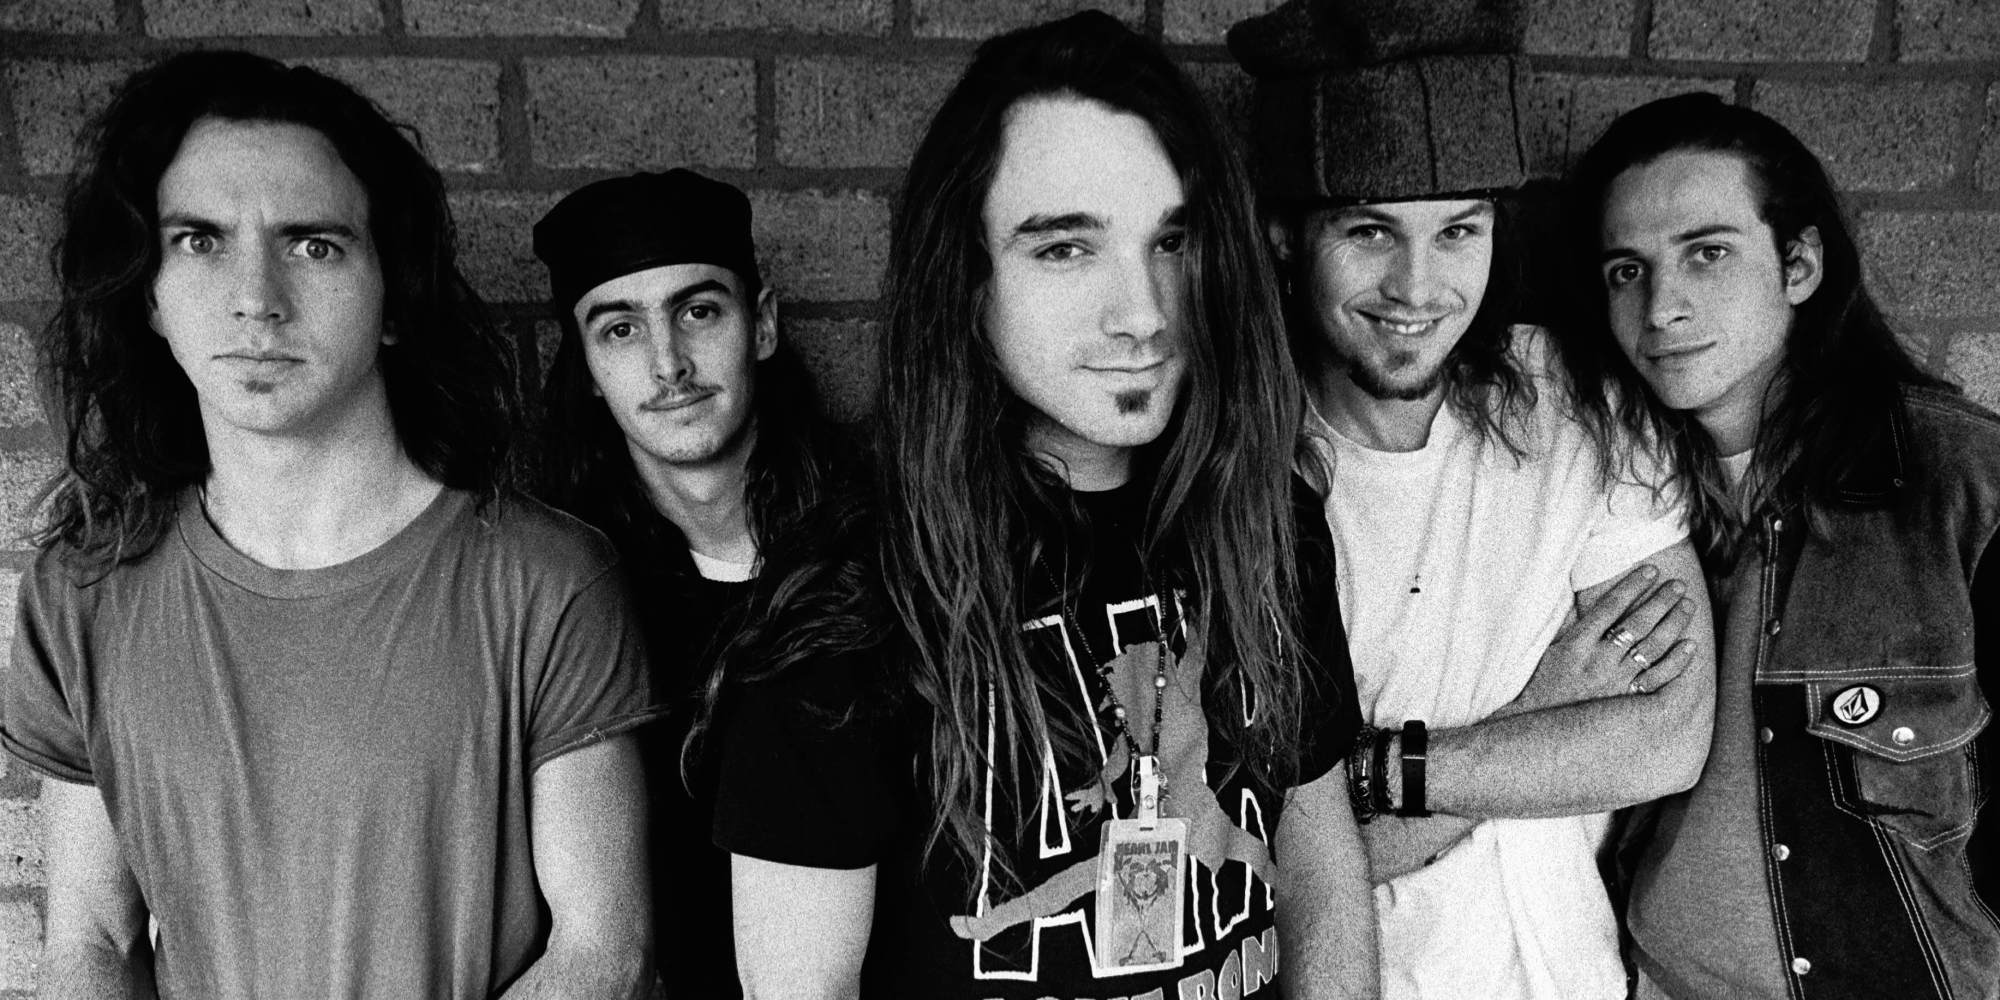 ... Is Alive In These 16 Vintage Pearl Jam Photos | The Huffington Post